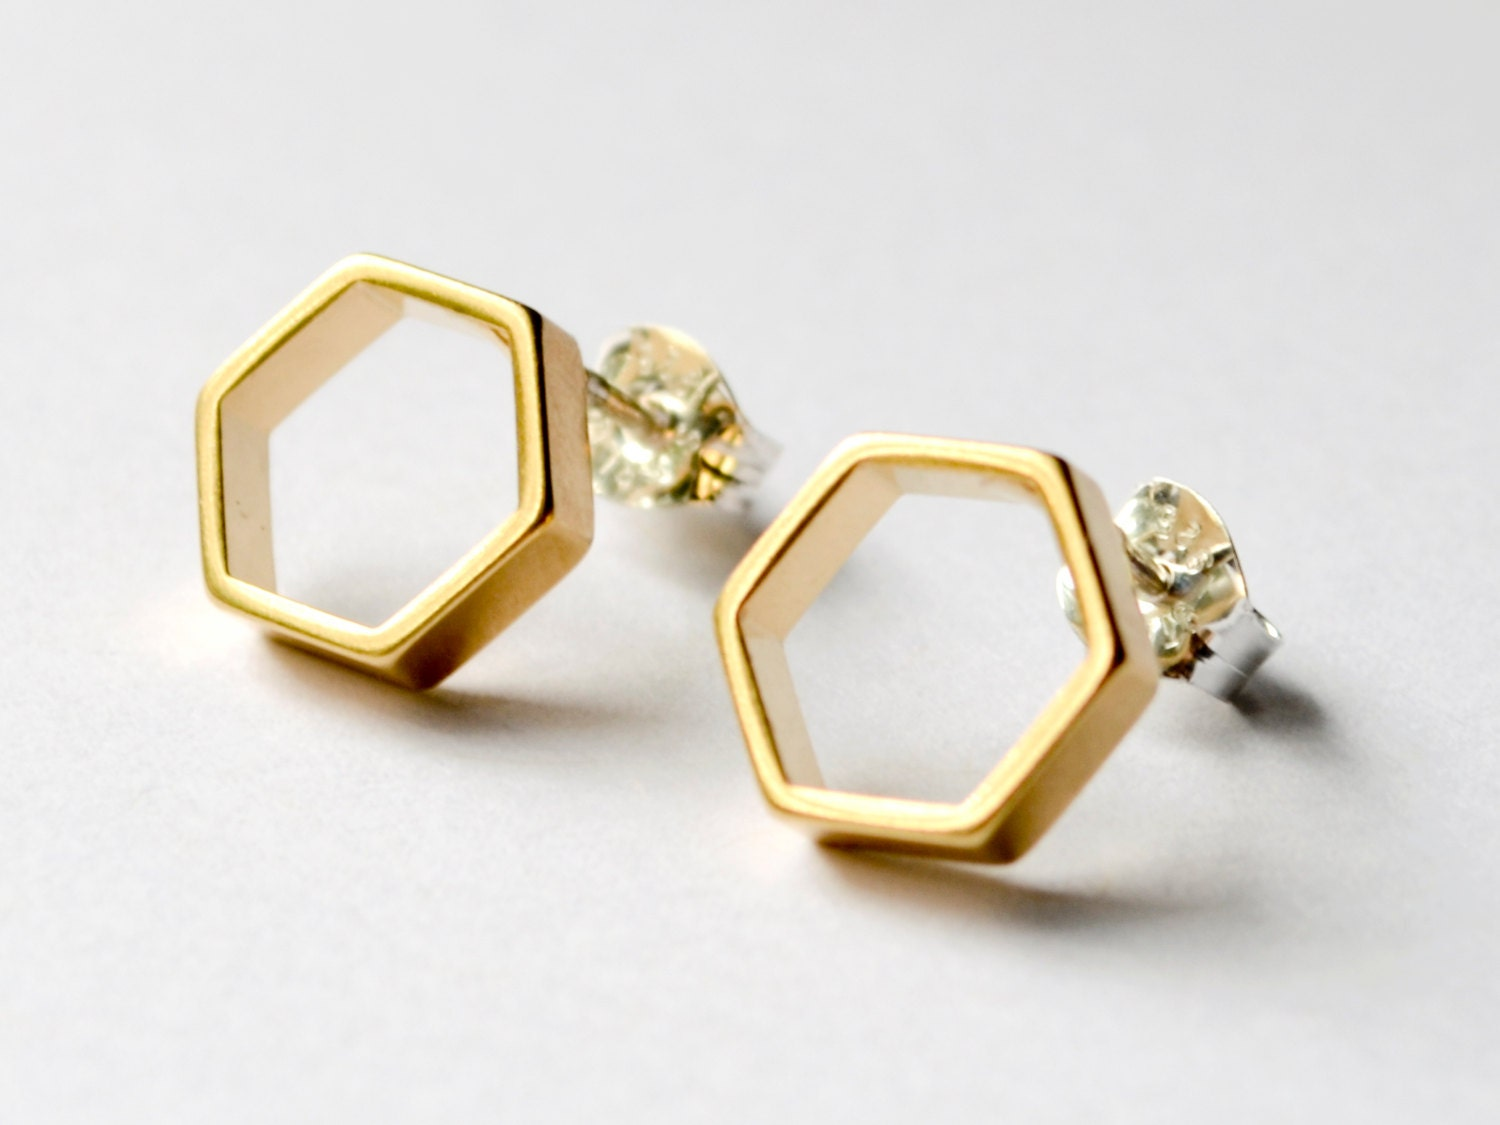 Gold Hexagon Stud Earrings Geometric Honeycomb Studs